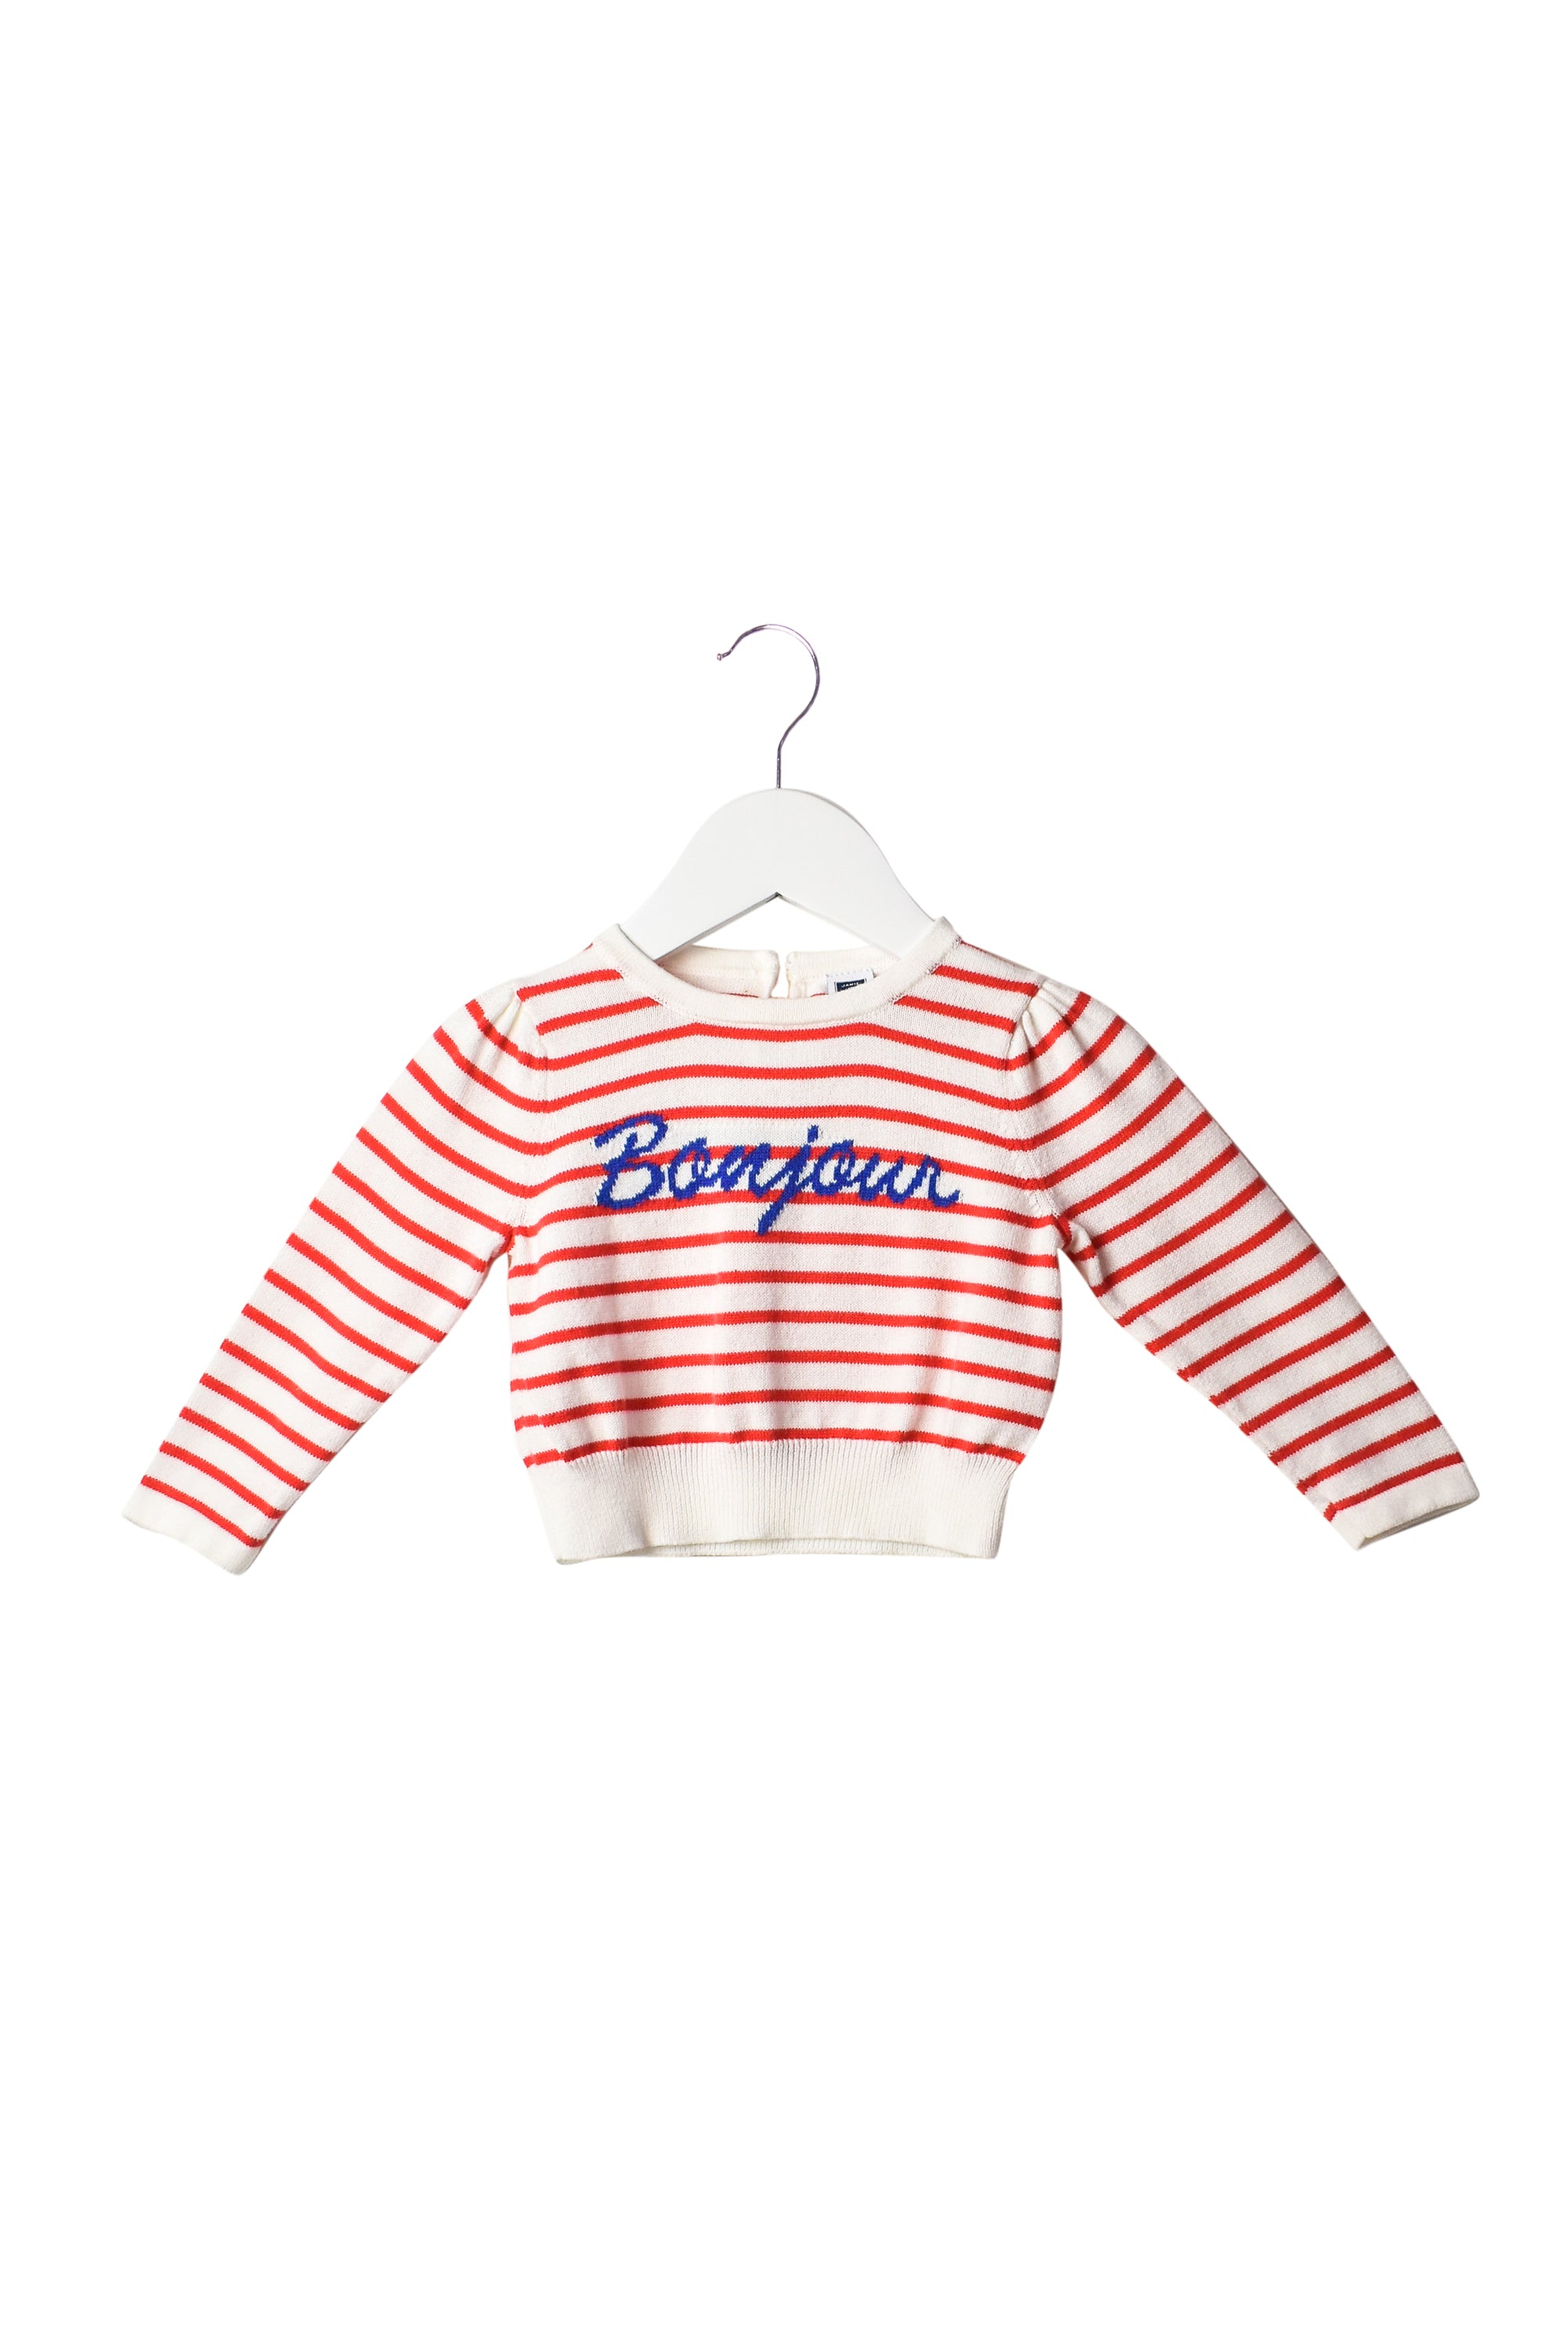 10006338 Janie & Jack Baby~Sweater 6-12M at Retykle